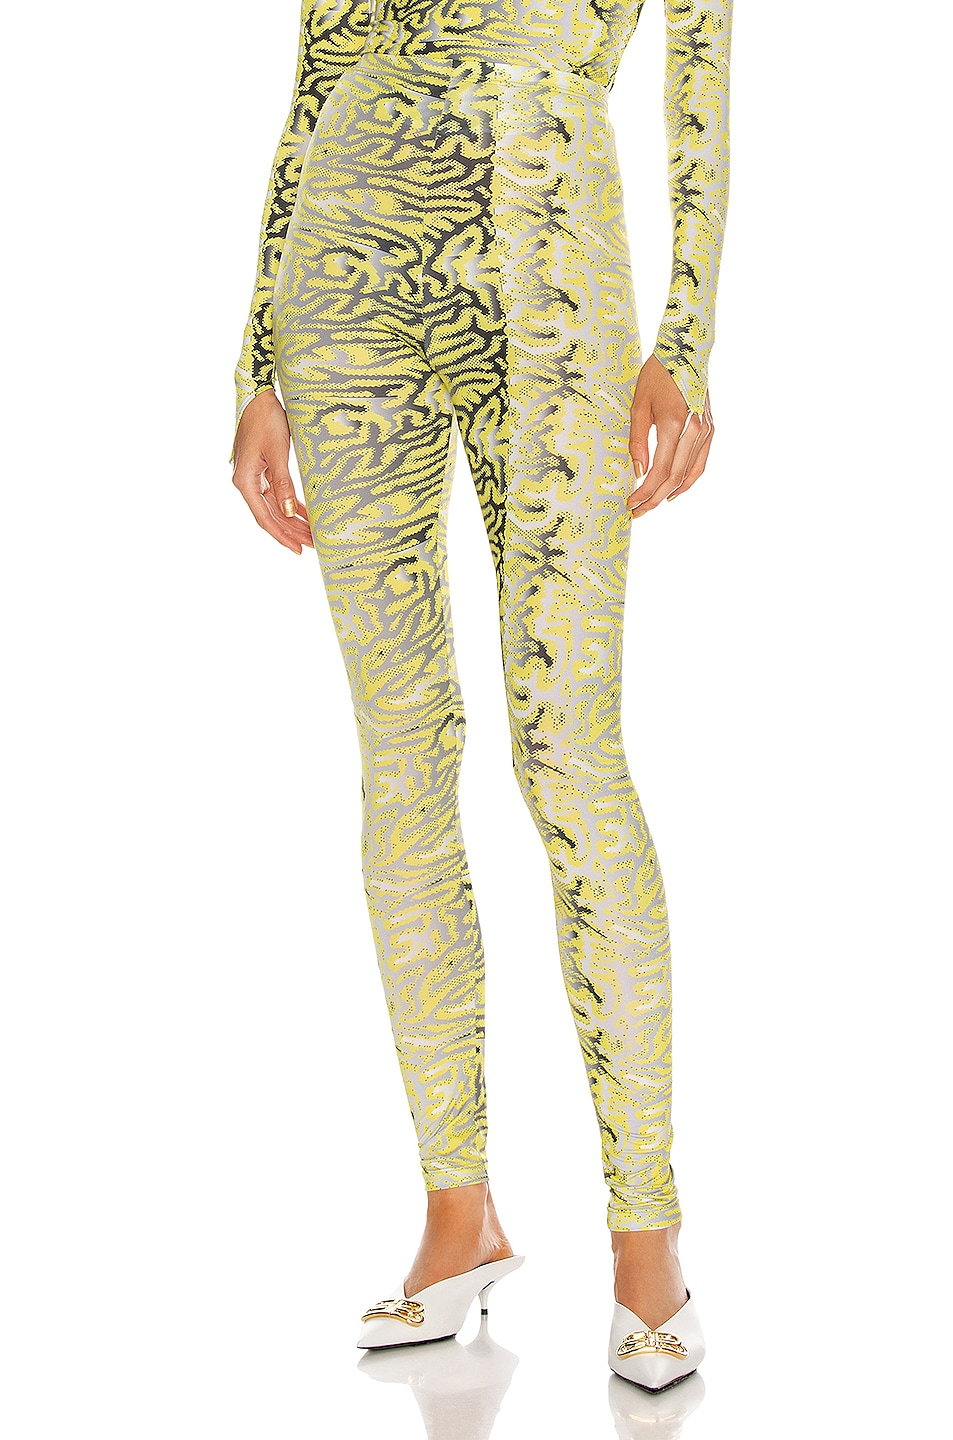 Image 1 of Maisie Wilen Body Shop Legging in Planet Brain Yellow